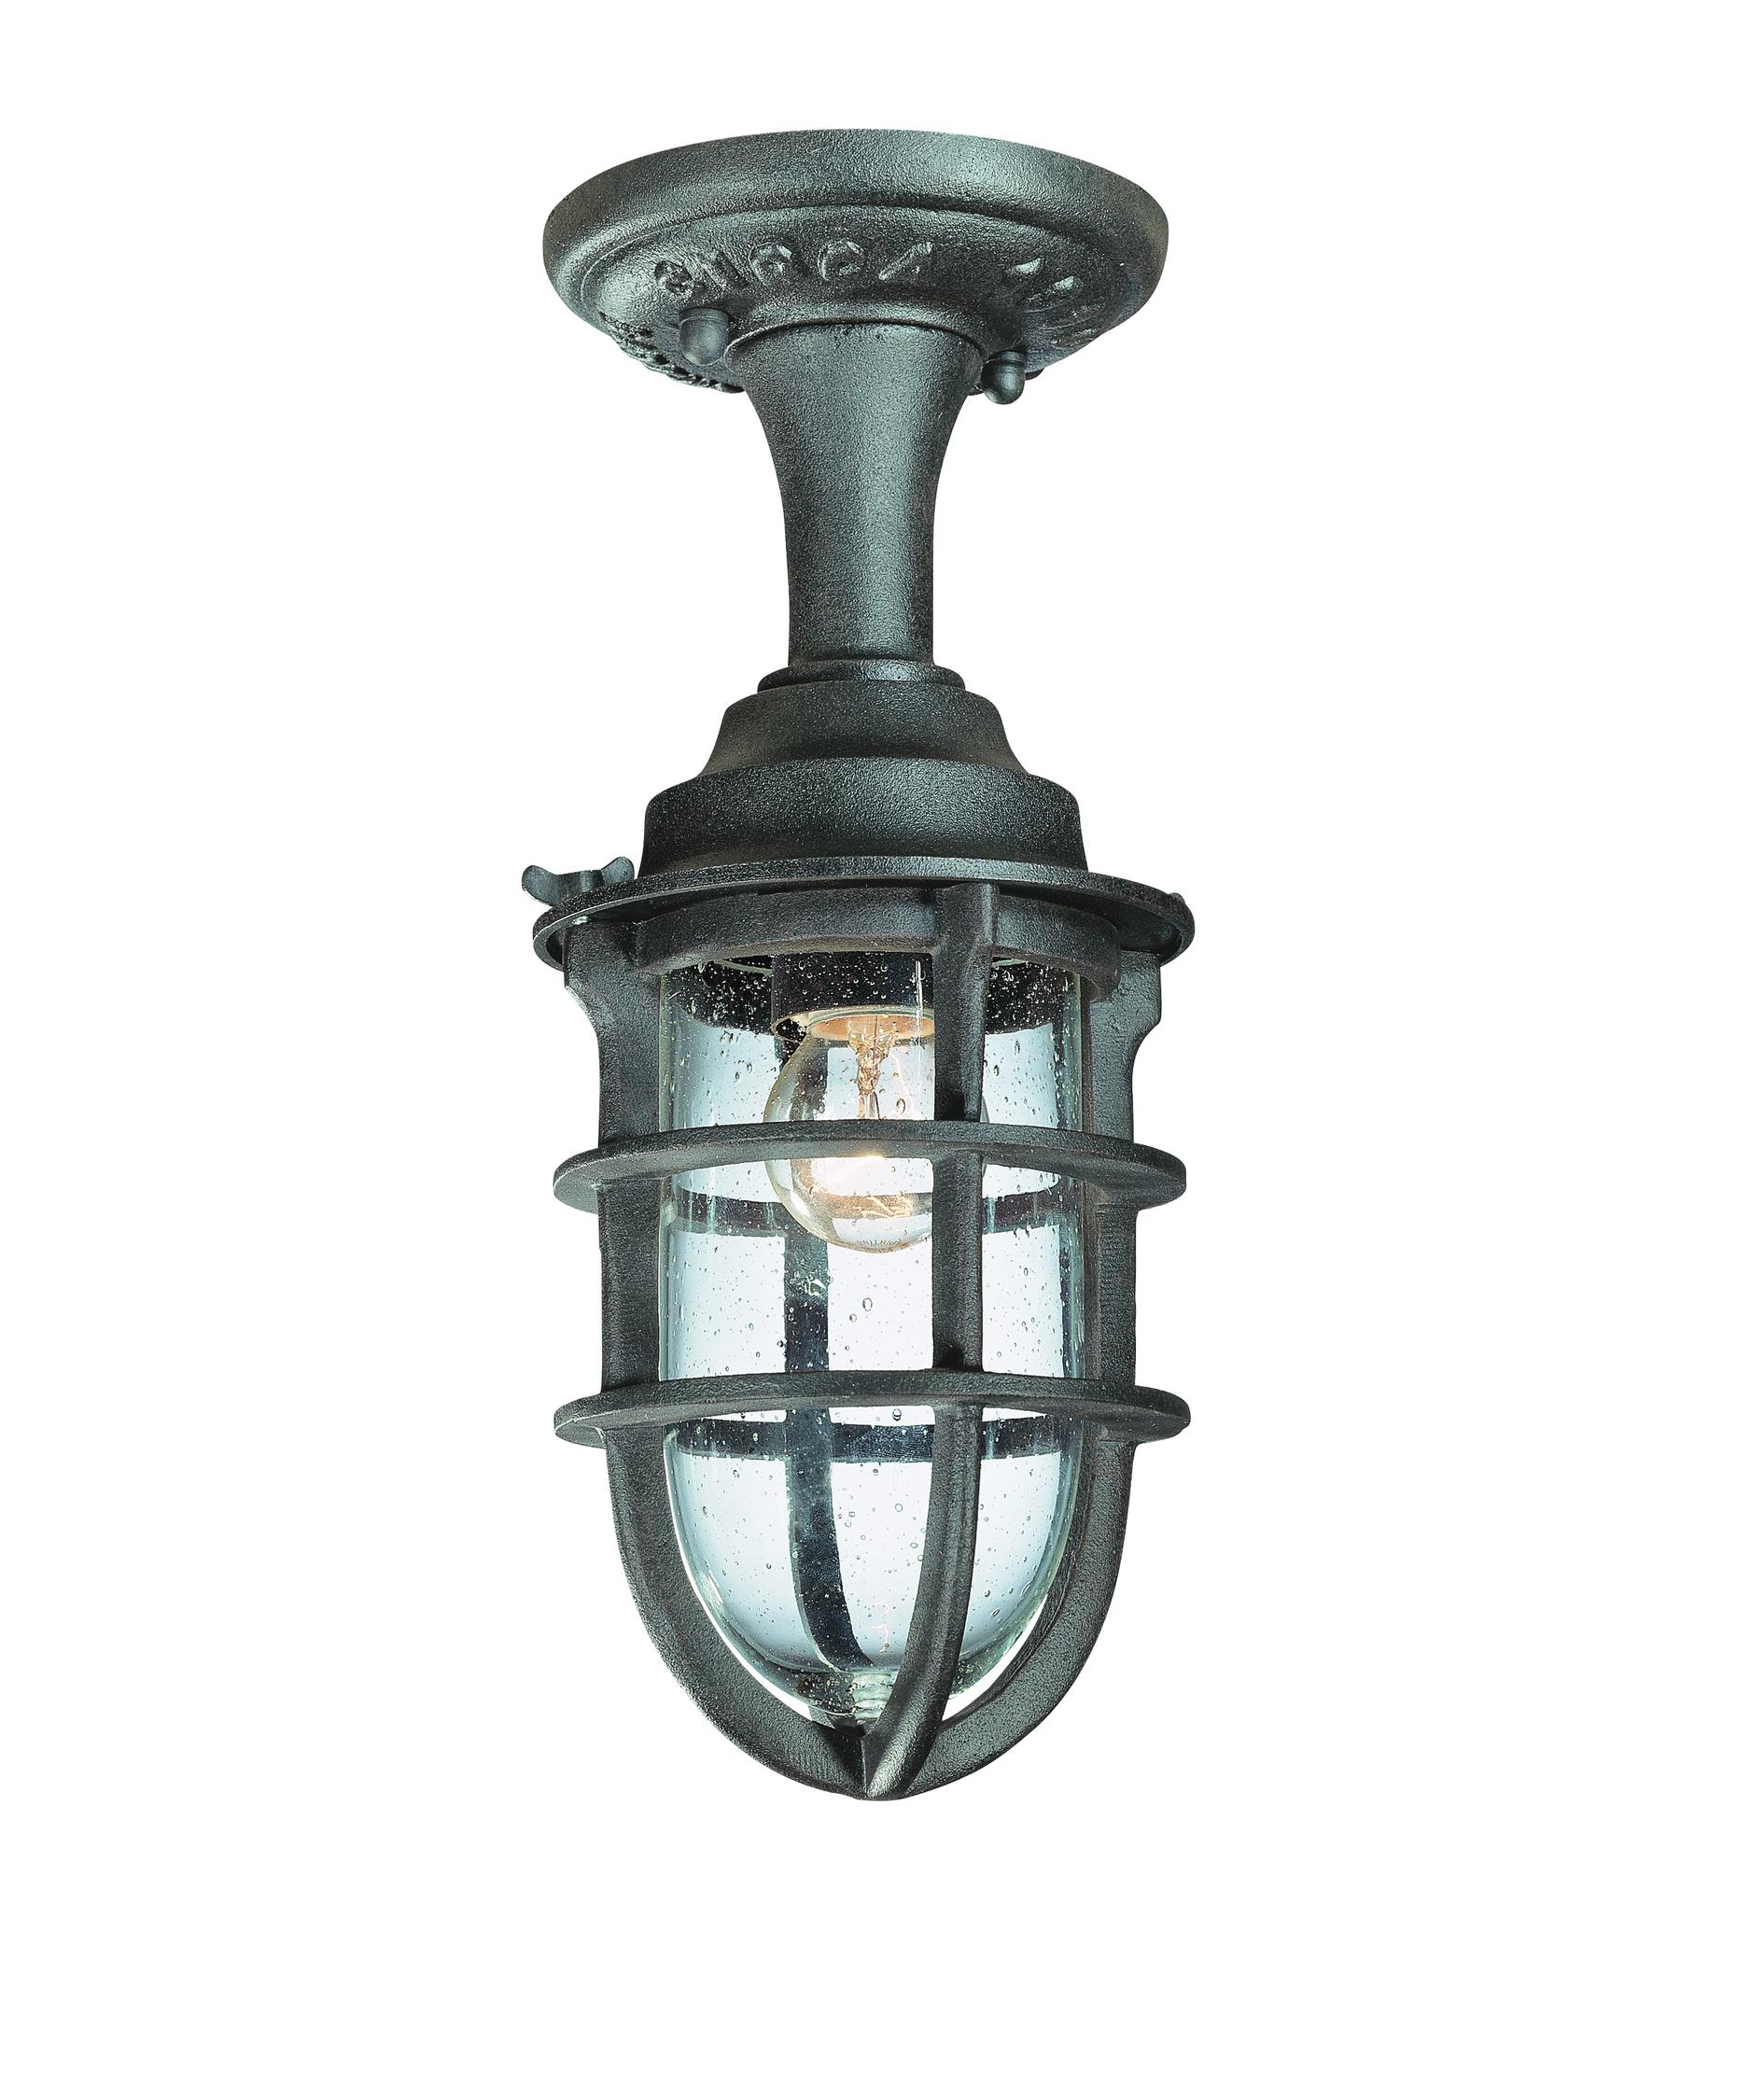 Flush mount outdoor lighting - Shown In Nautical Rust Finish And Clear Seeded Glass